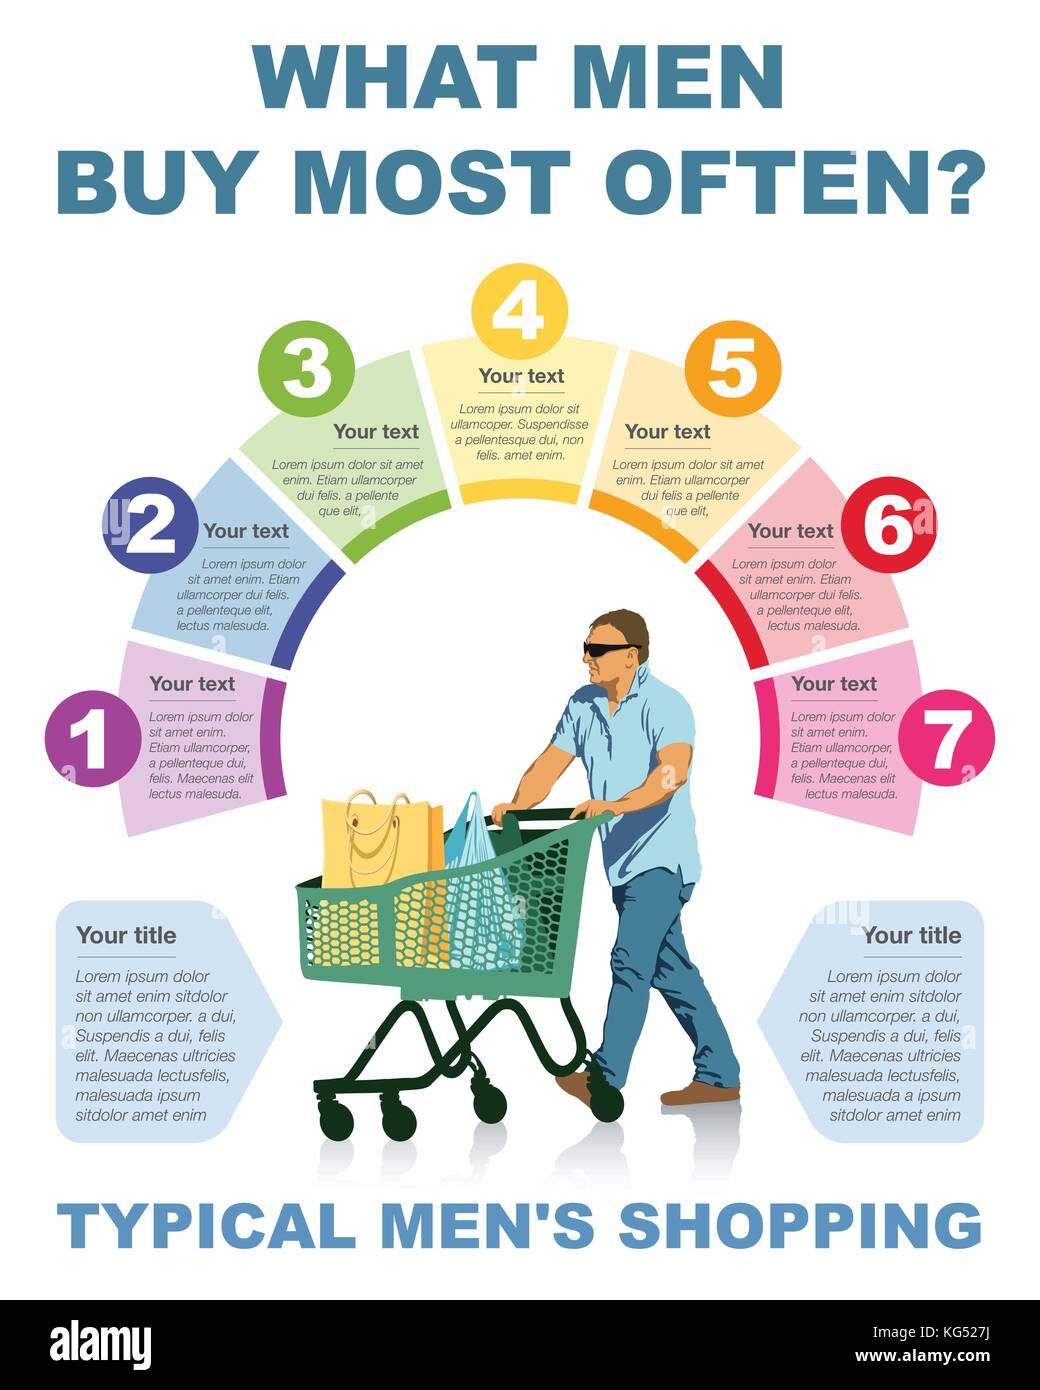 What people buy most often? Typical menÕs shopping. - Stock Vector